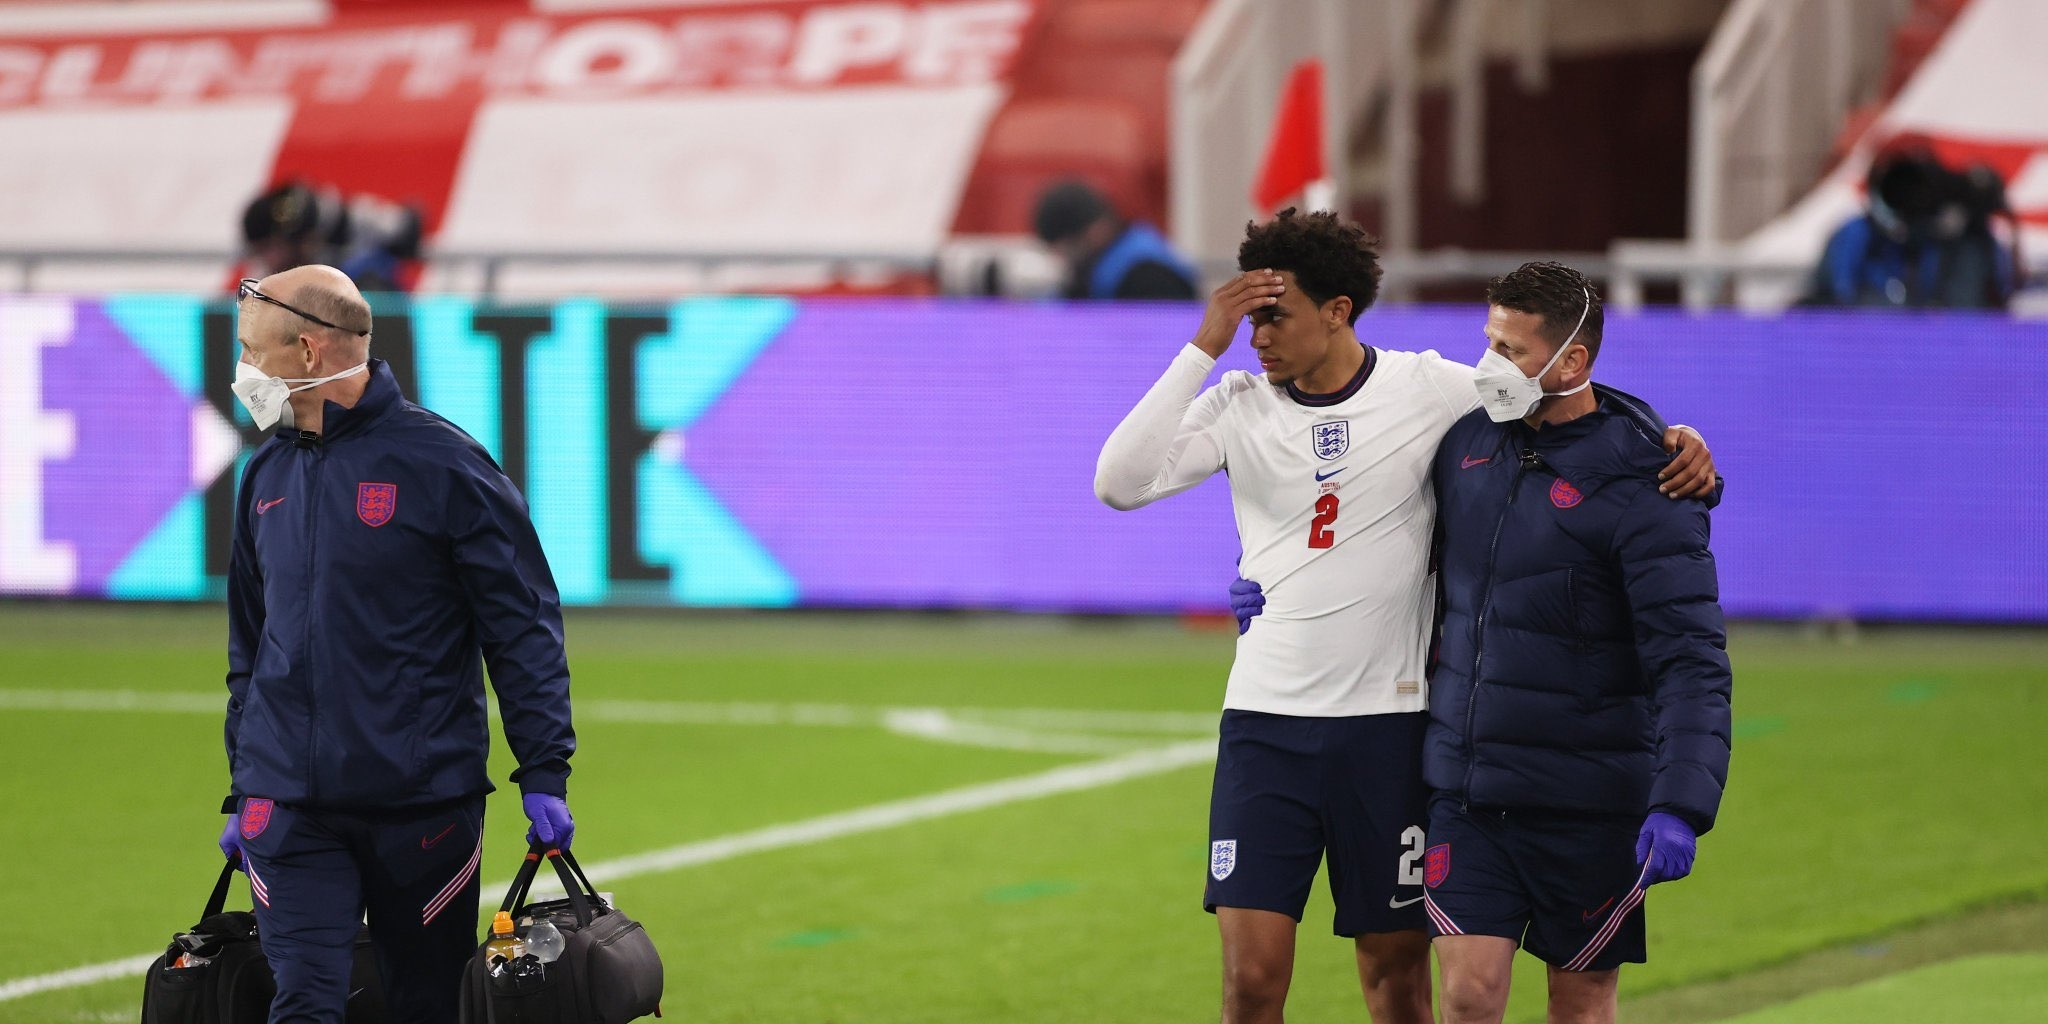 'Shouldn't be in the squad anyway' – Some England fans' reactions to Gary Lineker's Trent tweet are bizarre